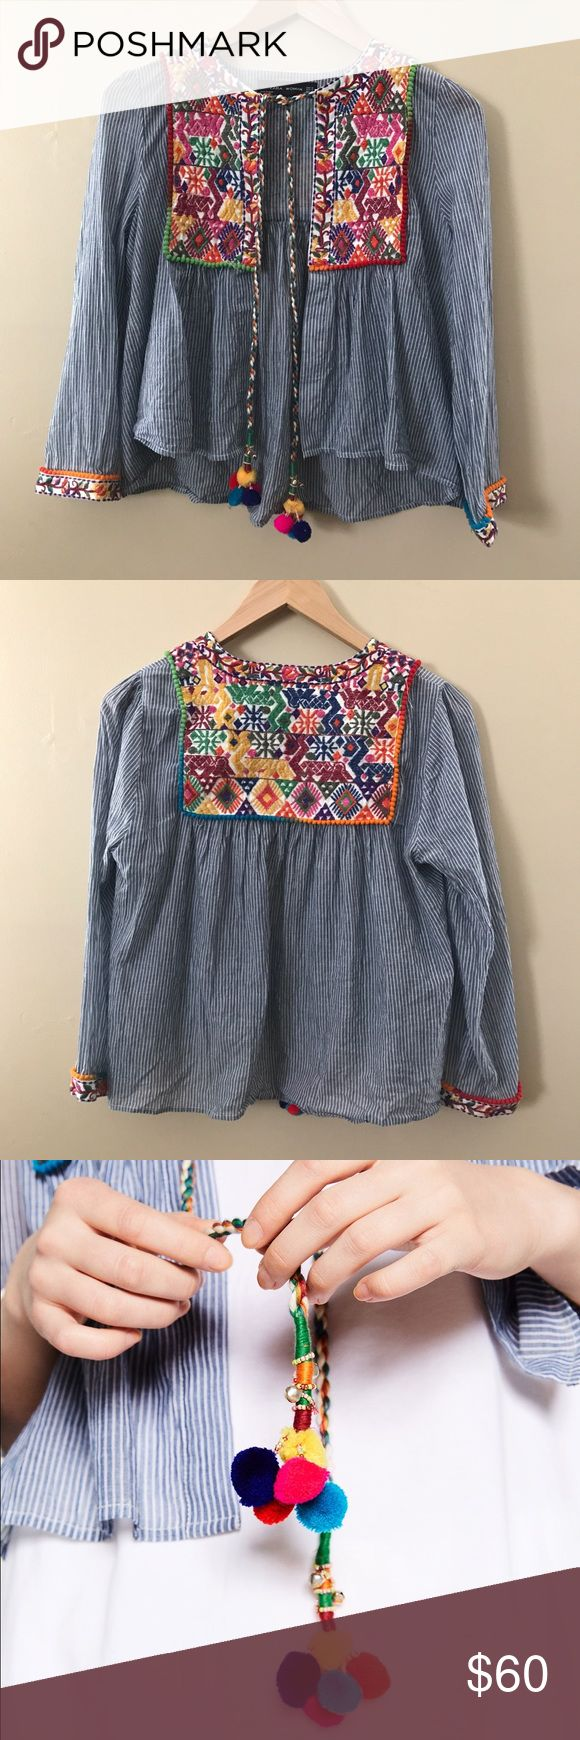 Zara Short Embroidered Jacket Zara Short Embroidered Jacket • Size Medium • New without tags      Revolve clothing , Forever 21 , Nordstrom , Shop bop , anthropologie , Urban Outfitters , Free People , ASOS , tribal , stripped , bohemian , boho , vintage  ( stores for views ) Zara Jackets & Coats